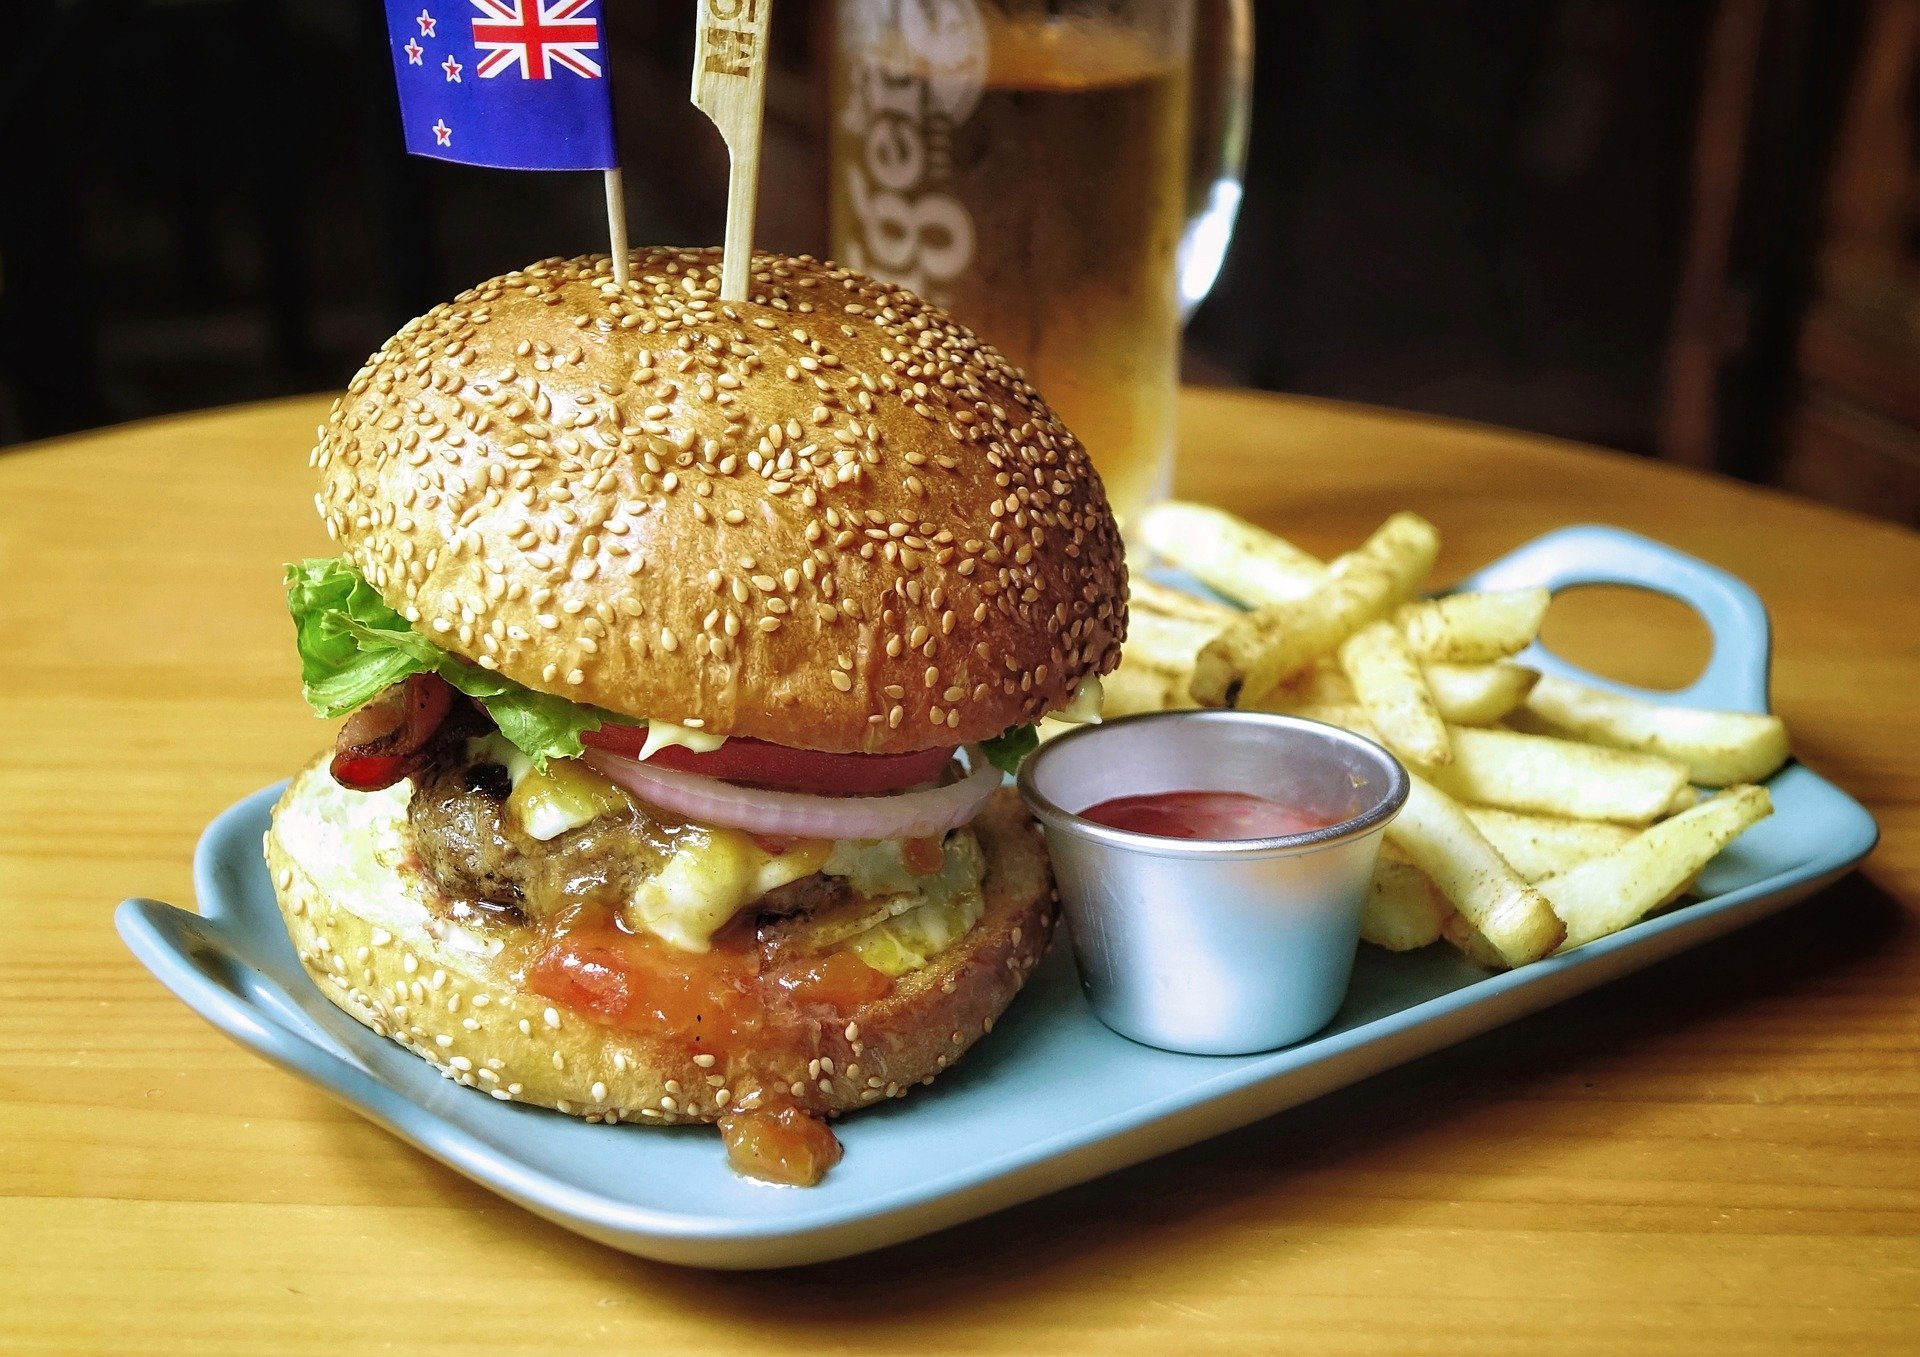 Food - Burger  Lunch Hamburger Meal French Fries Wallpaper